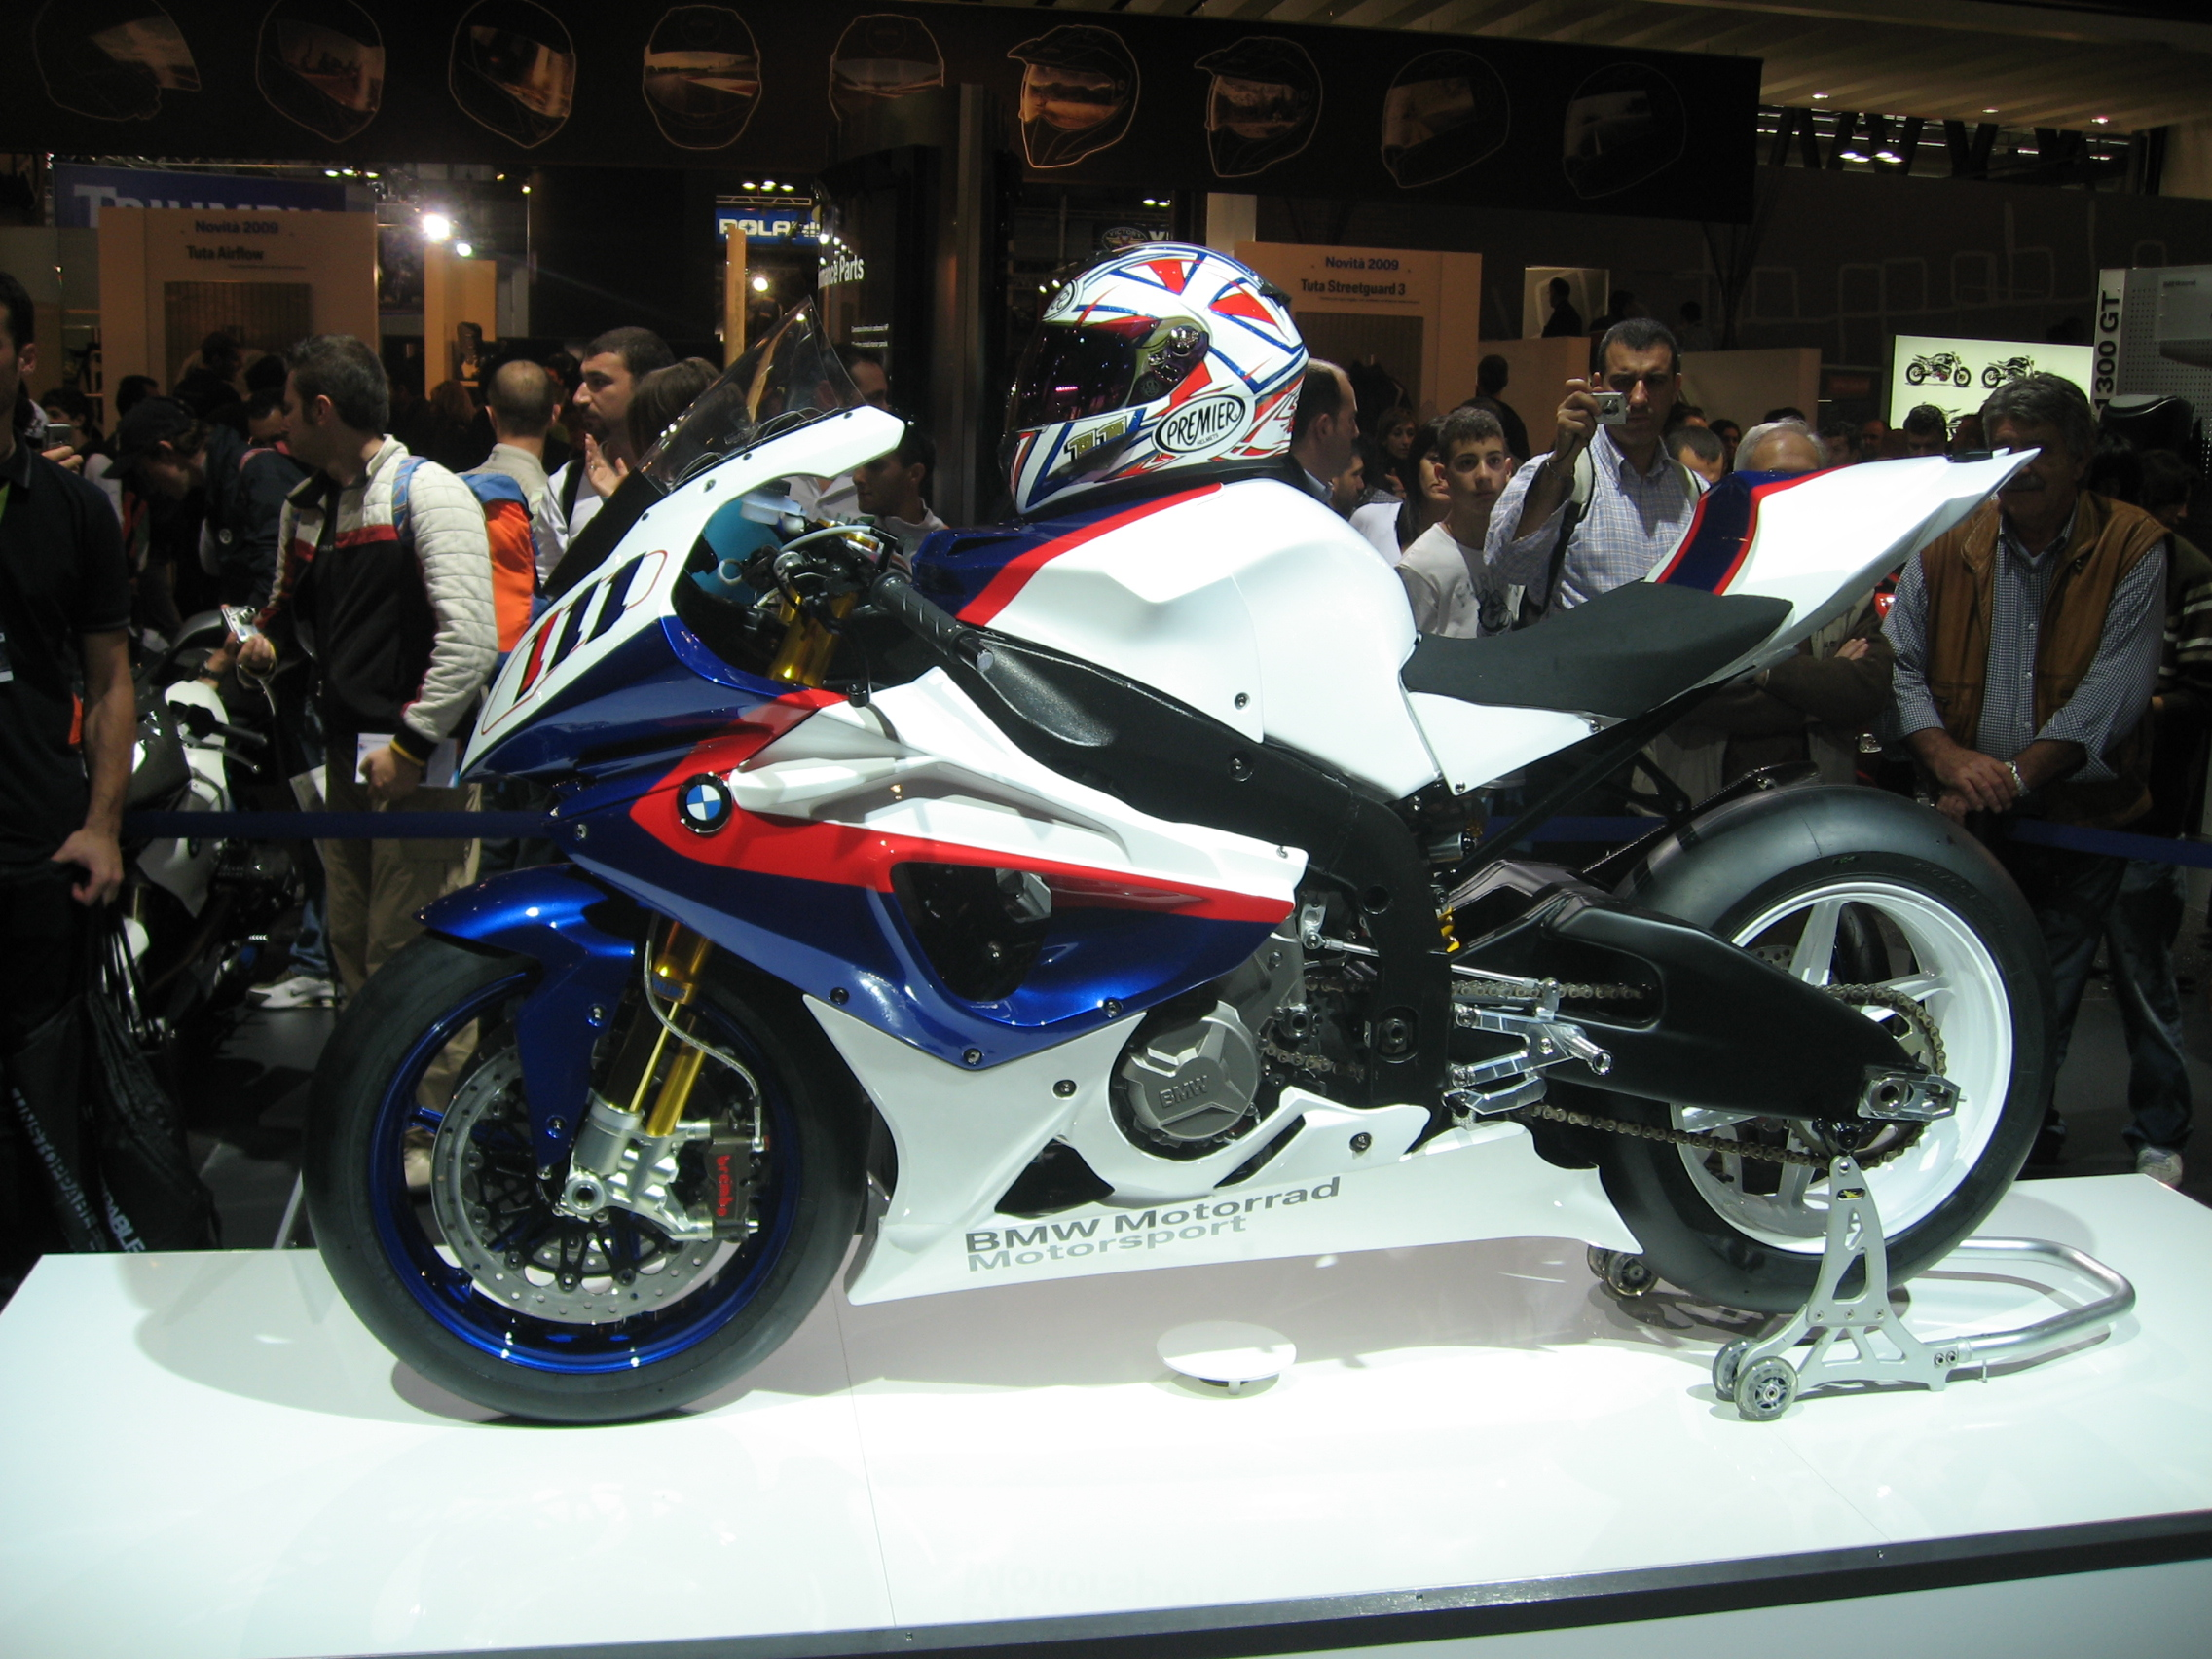 File:2014 BMW S1000RR right.JPG - Wikimedia Commons